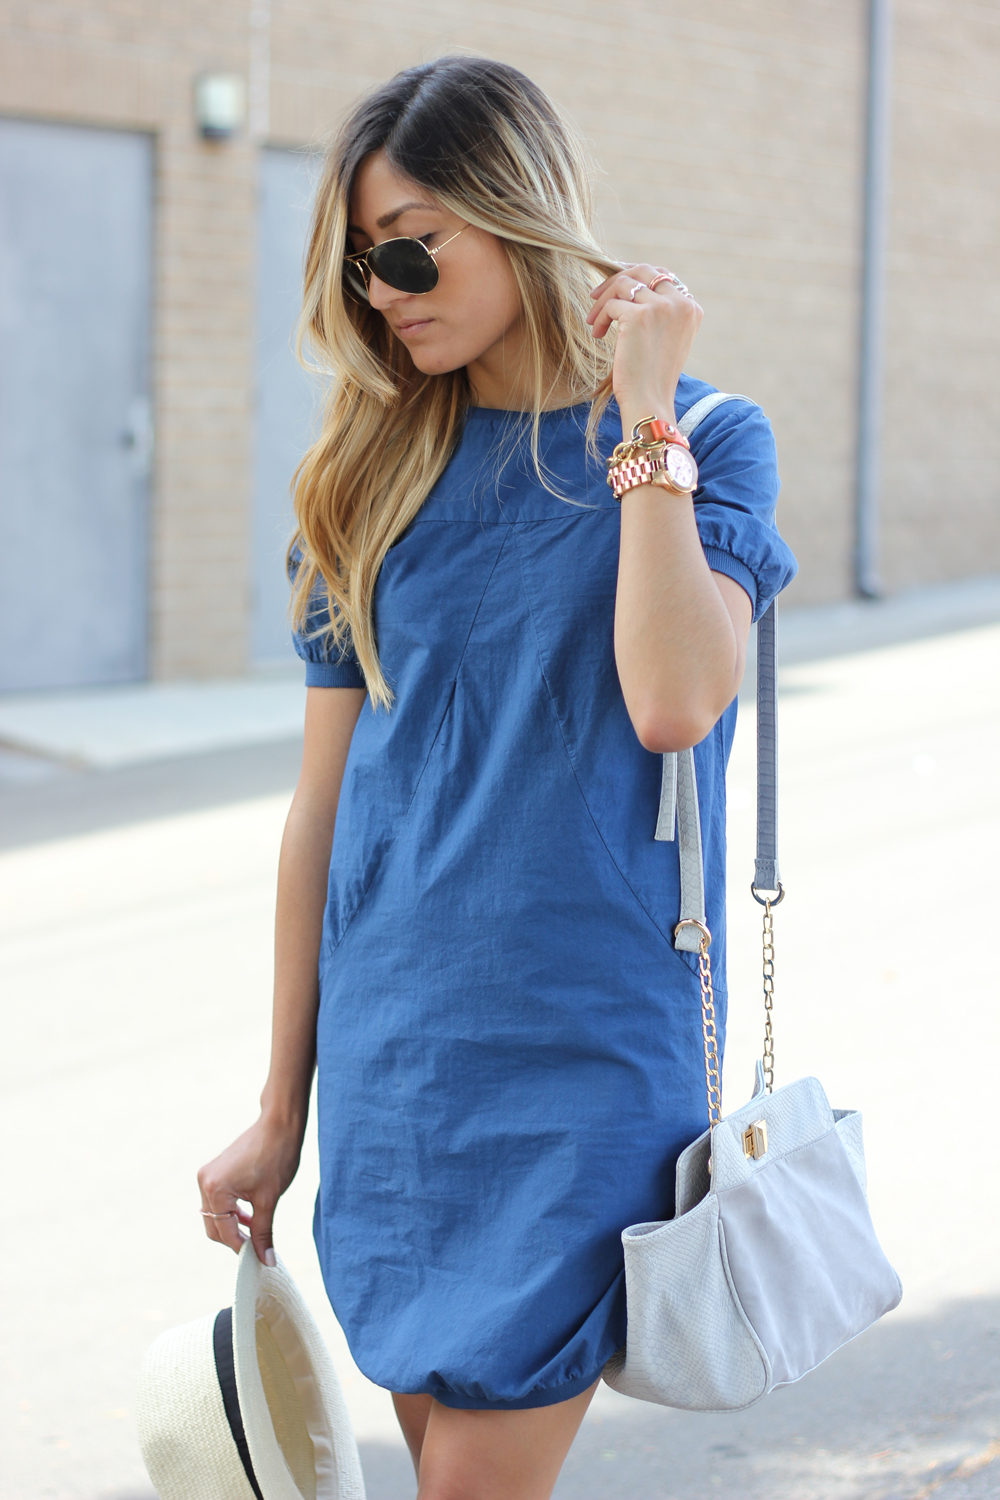 Basic Staples, Happy Hour Collection, Street Style, OOTD, Outfit, Spring, Summer, Keds